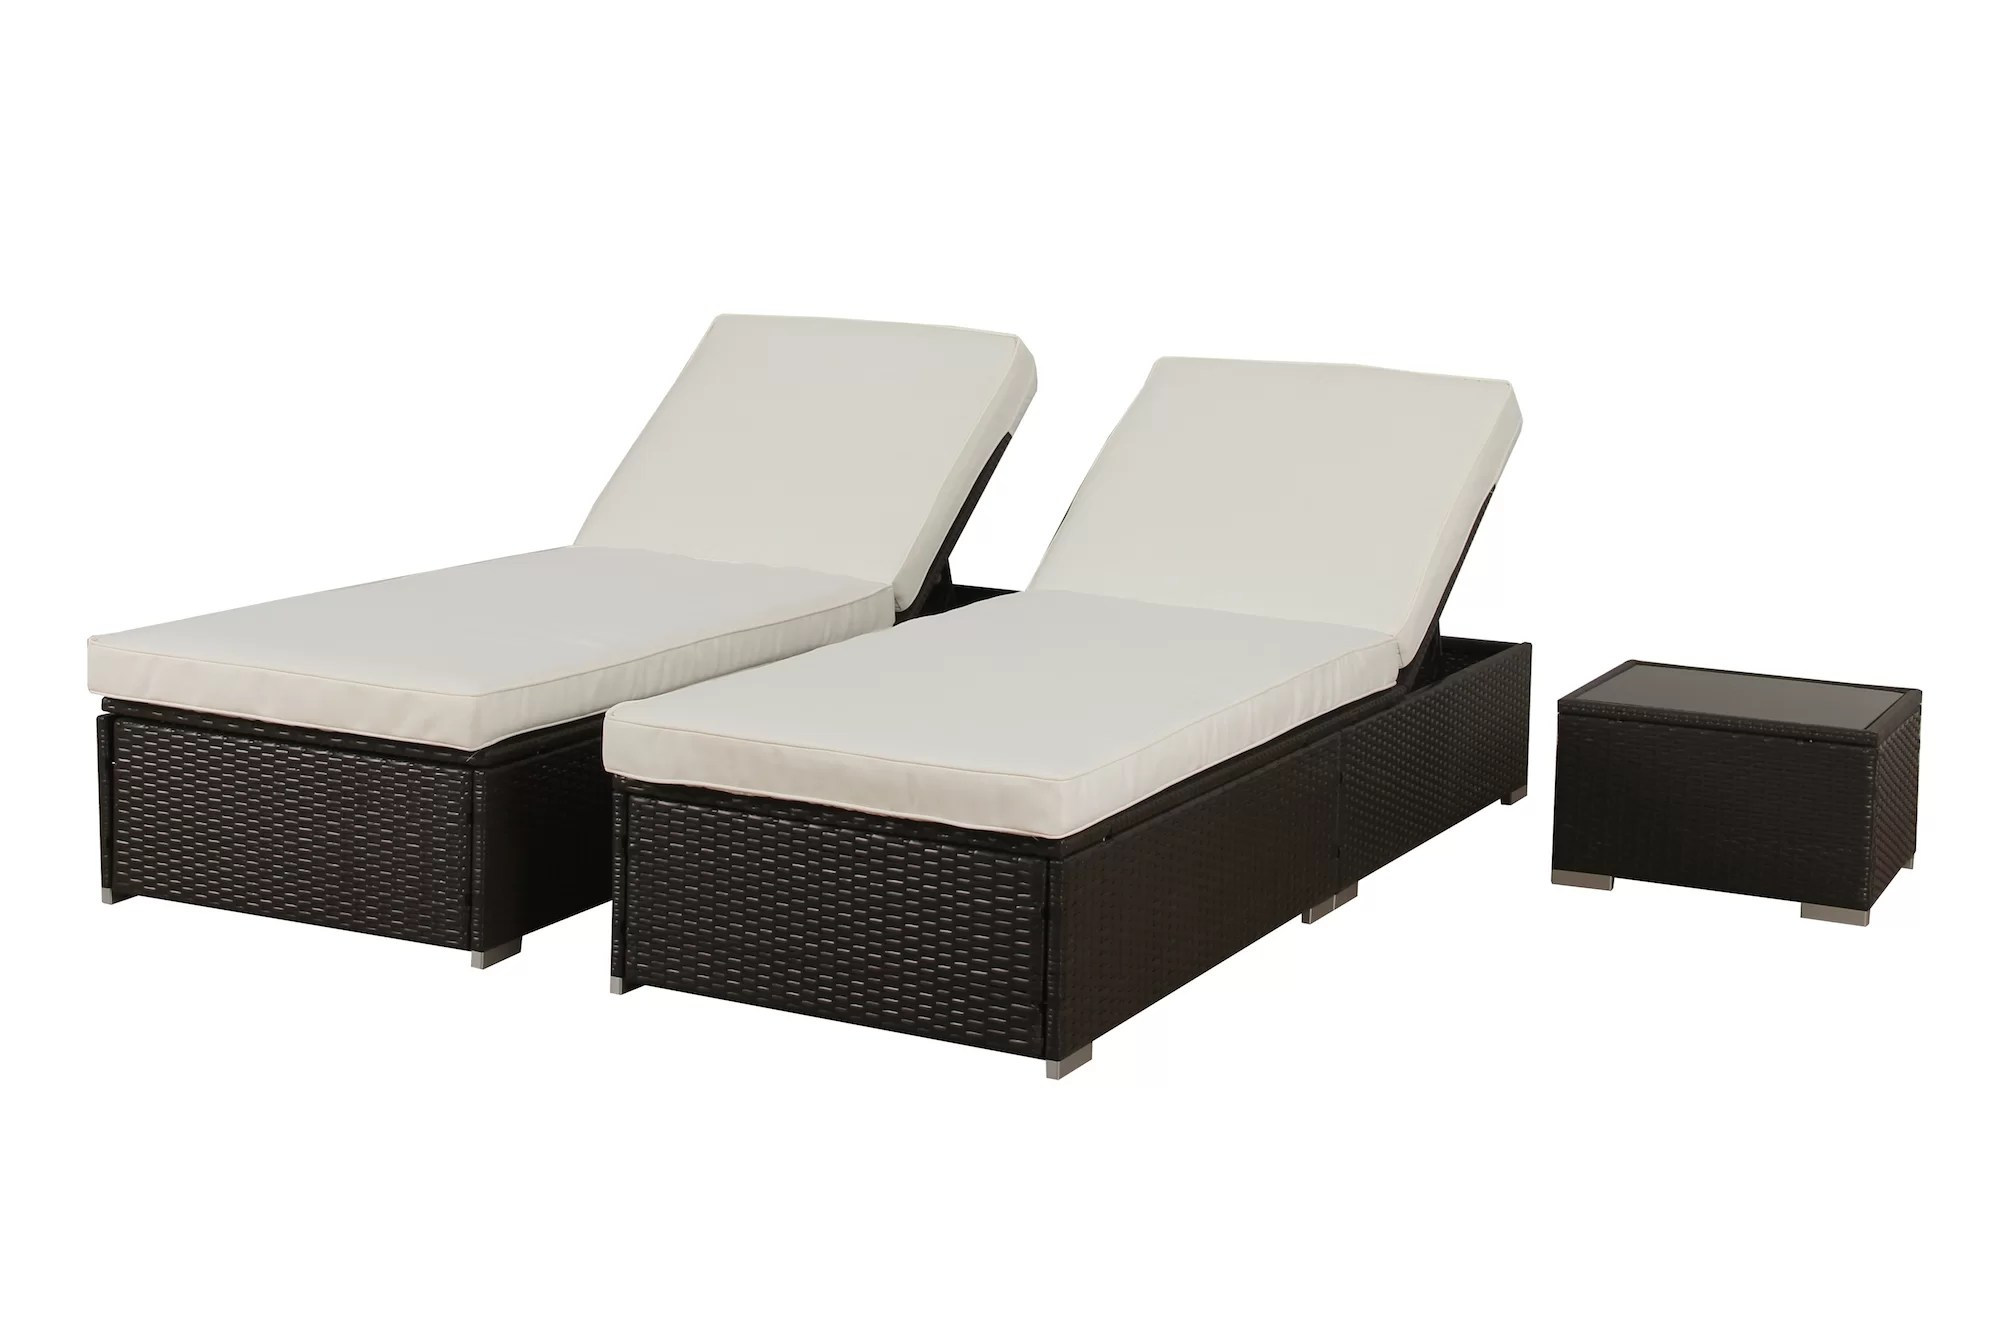 Lounge Set Rattan Degnan Outdoor Rattan Reclining Chaise Lounge With Cushion And Table